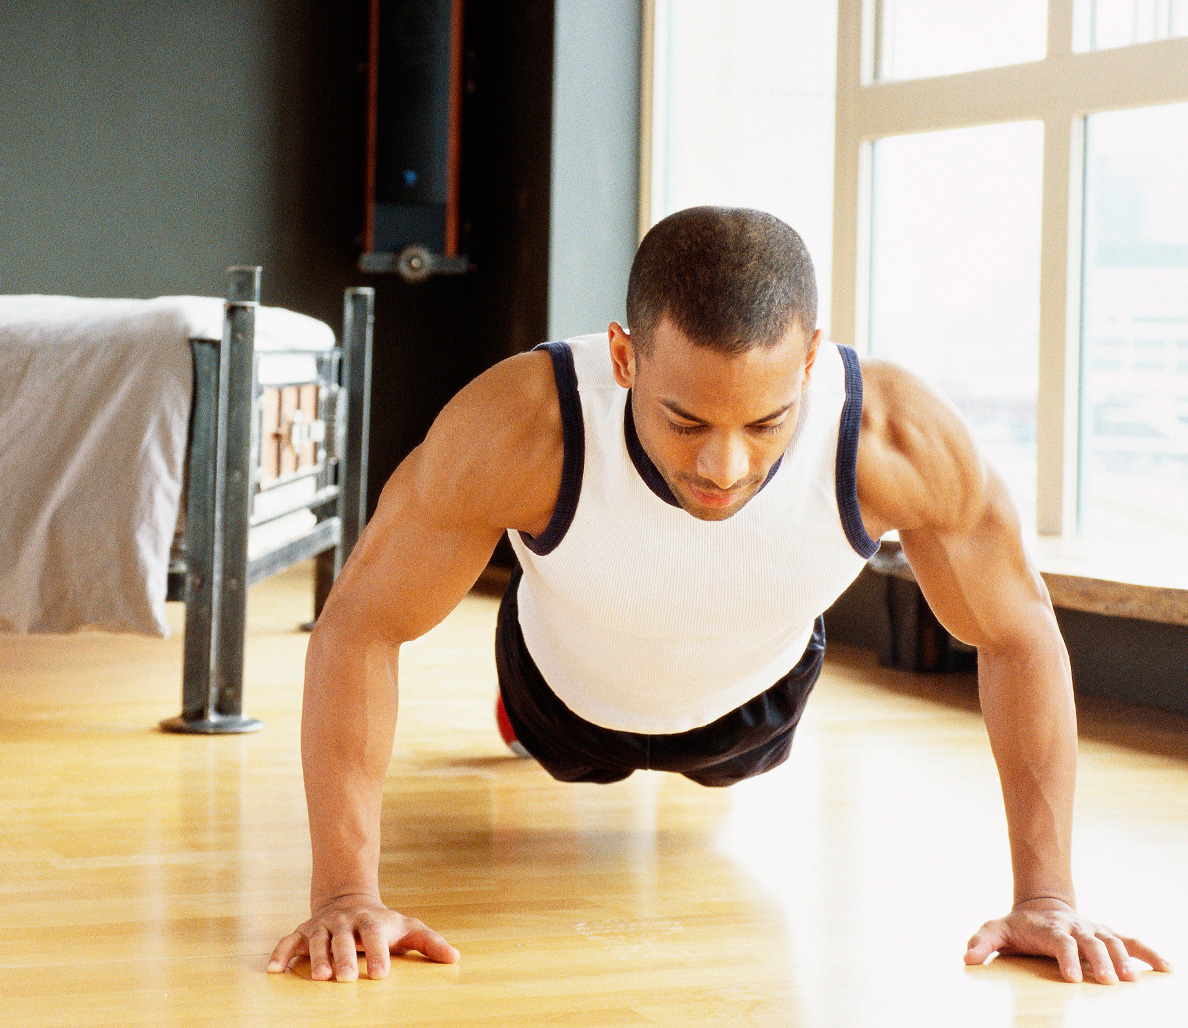 8 At Home Workouts Under 10 Minutes To Help You Lose Weight And Build Muscle